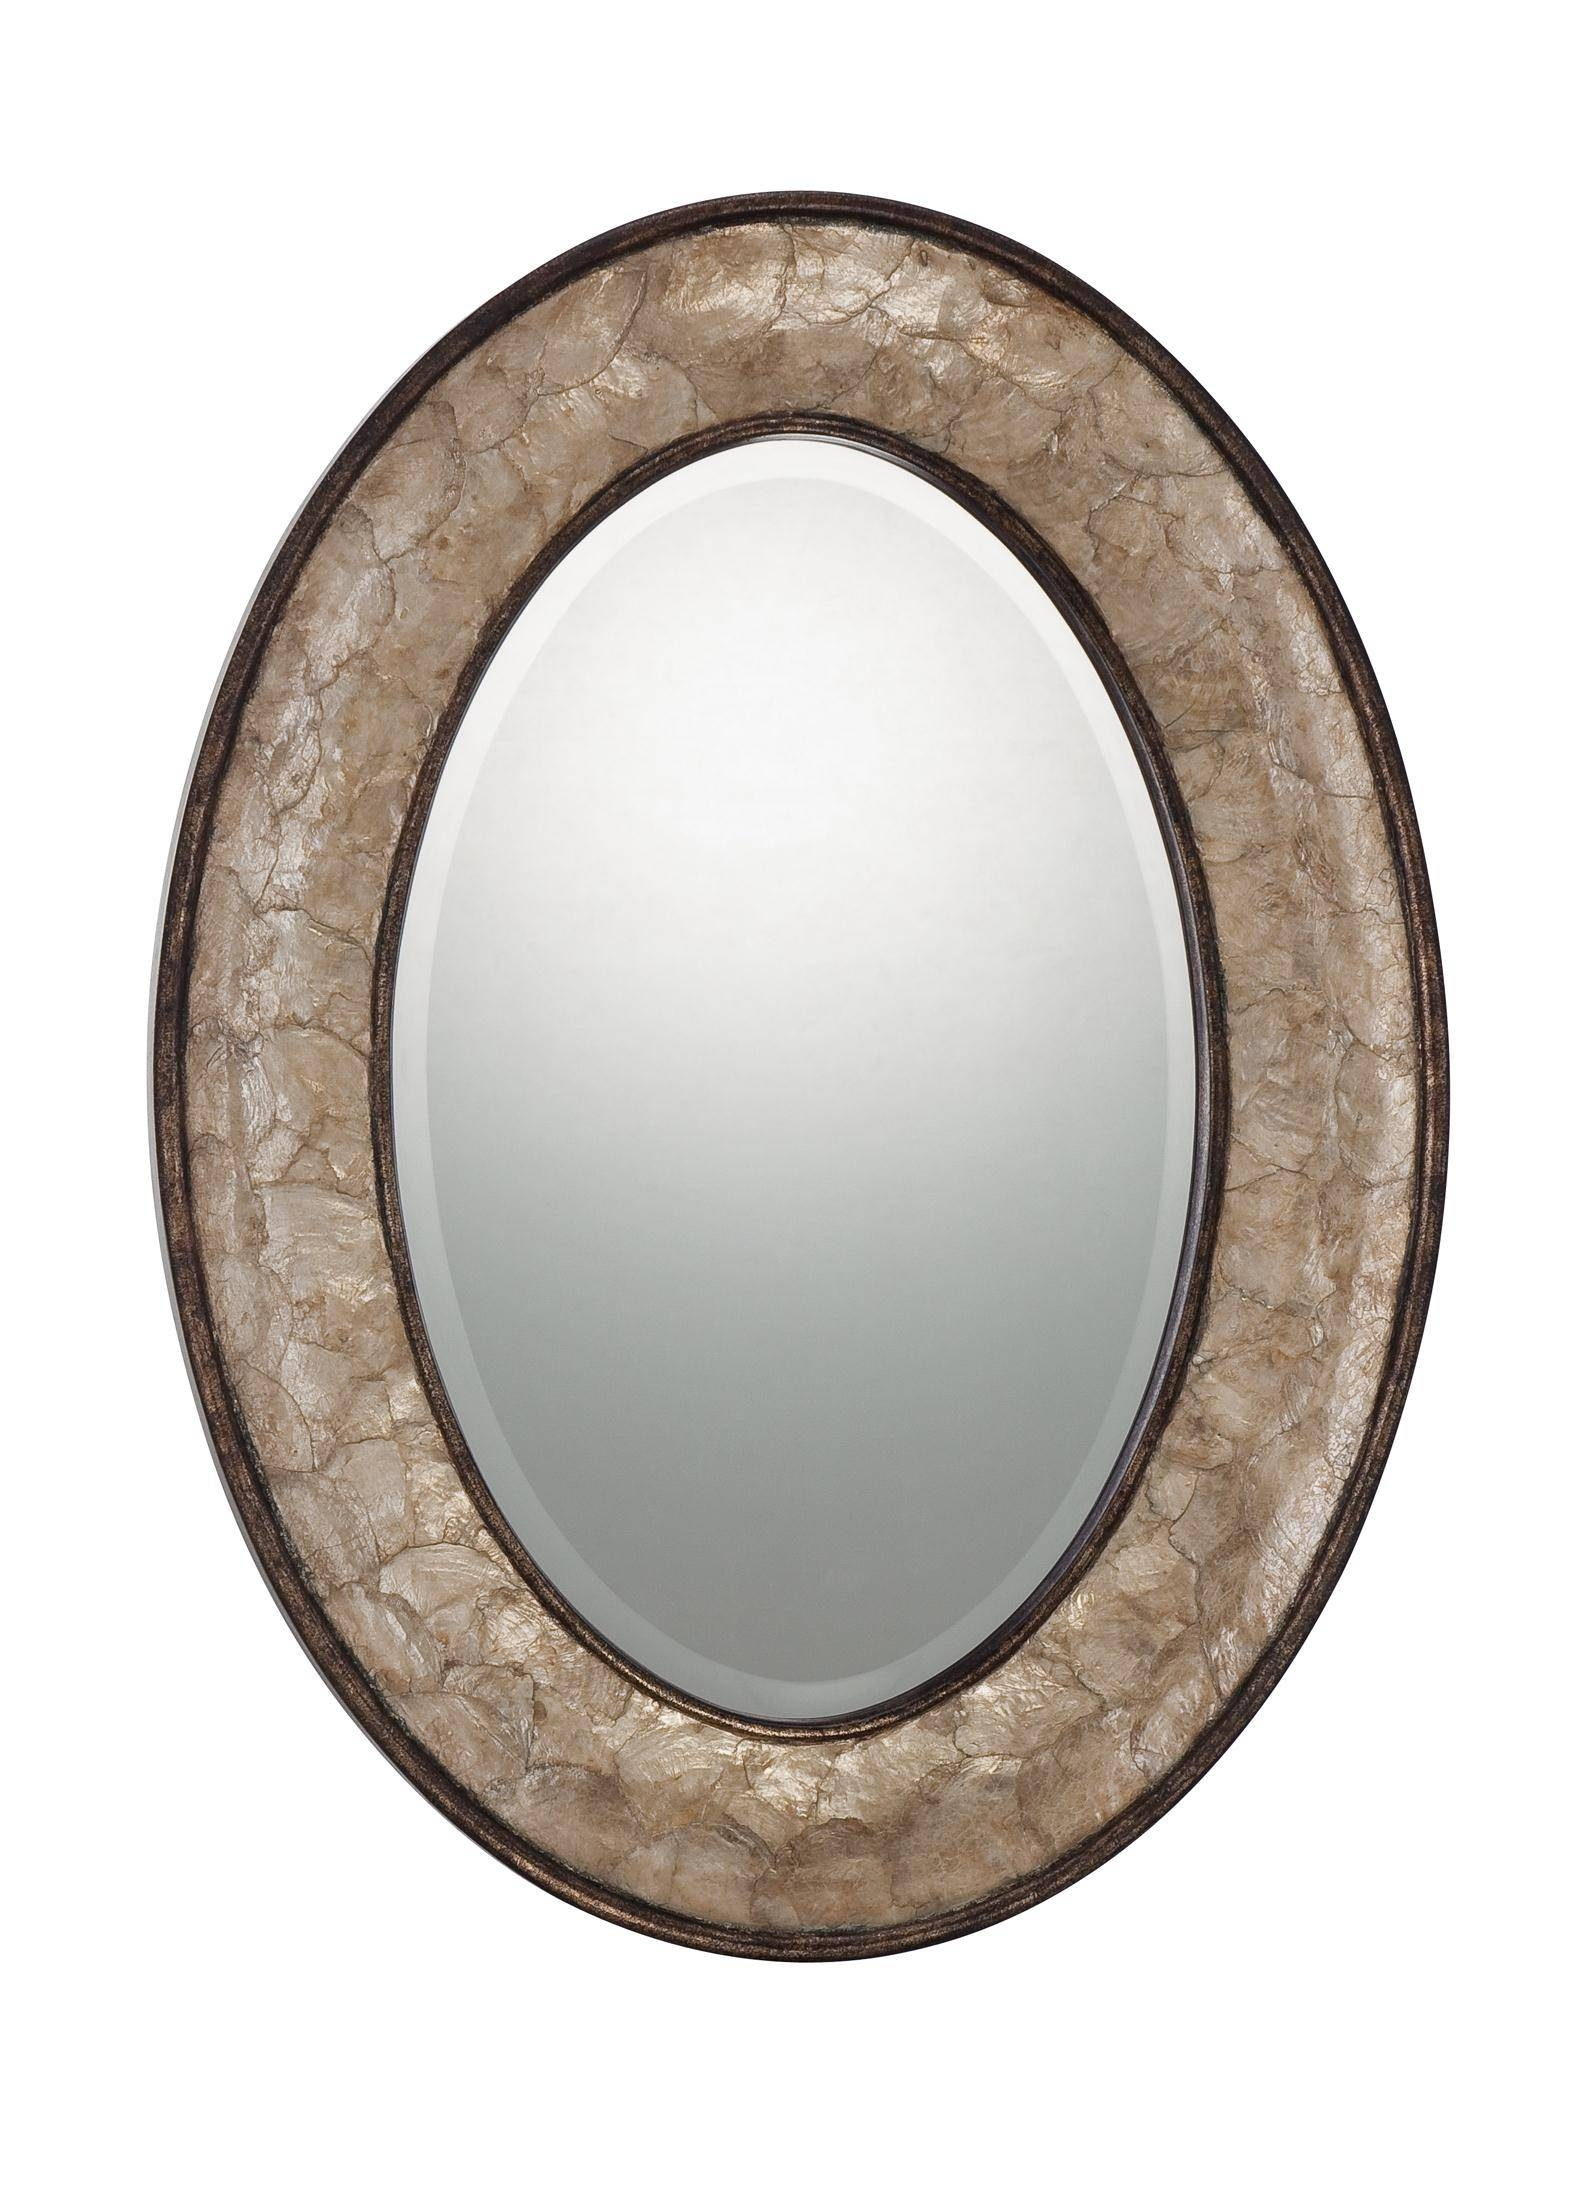 Oval Bathroom Mirrors Beautiful | Home Designjohn Intended For Oval Mirrors For Walls (View 6 of 25)